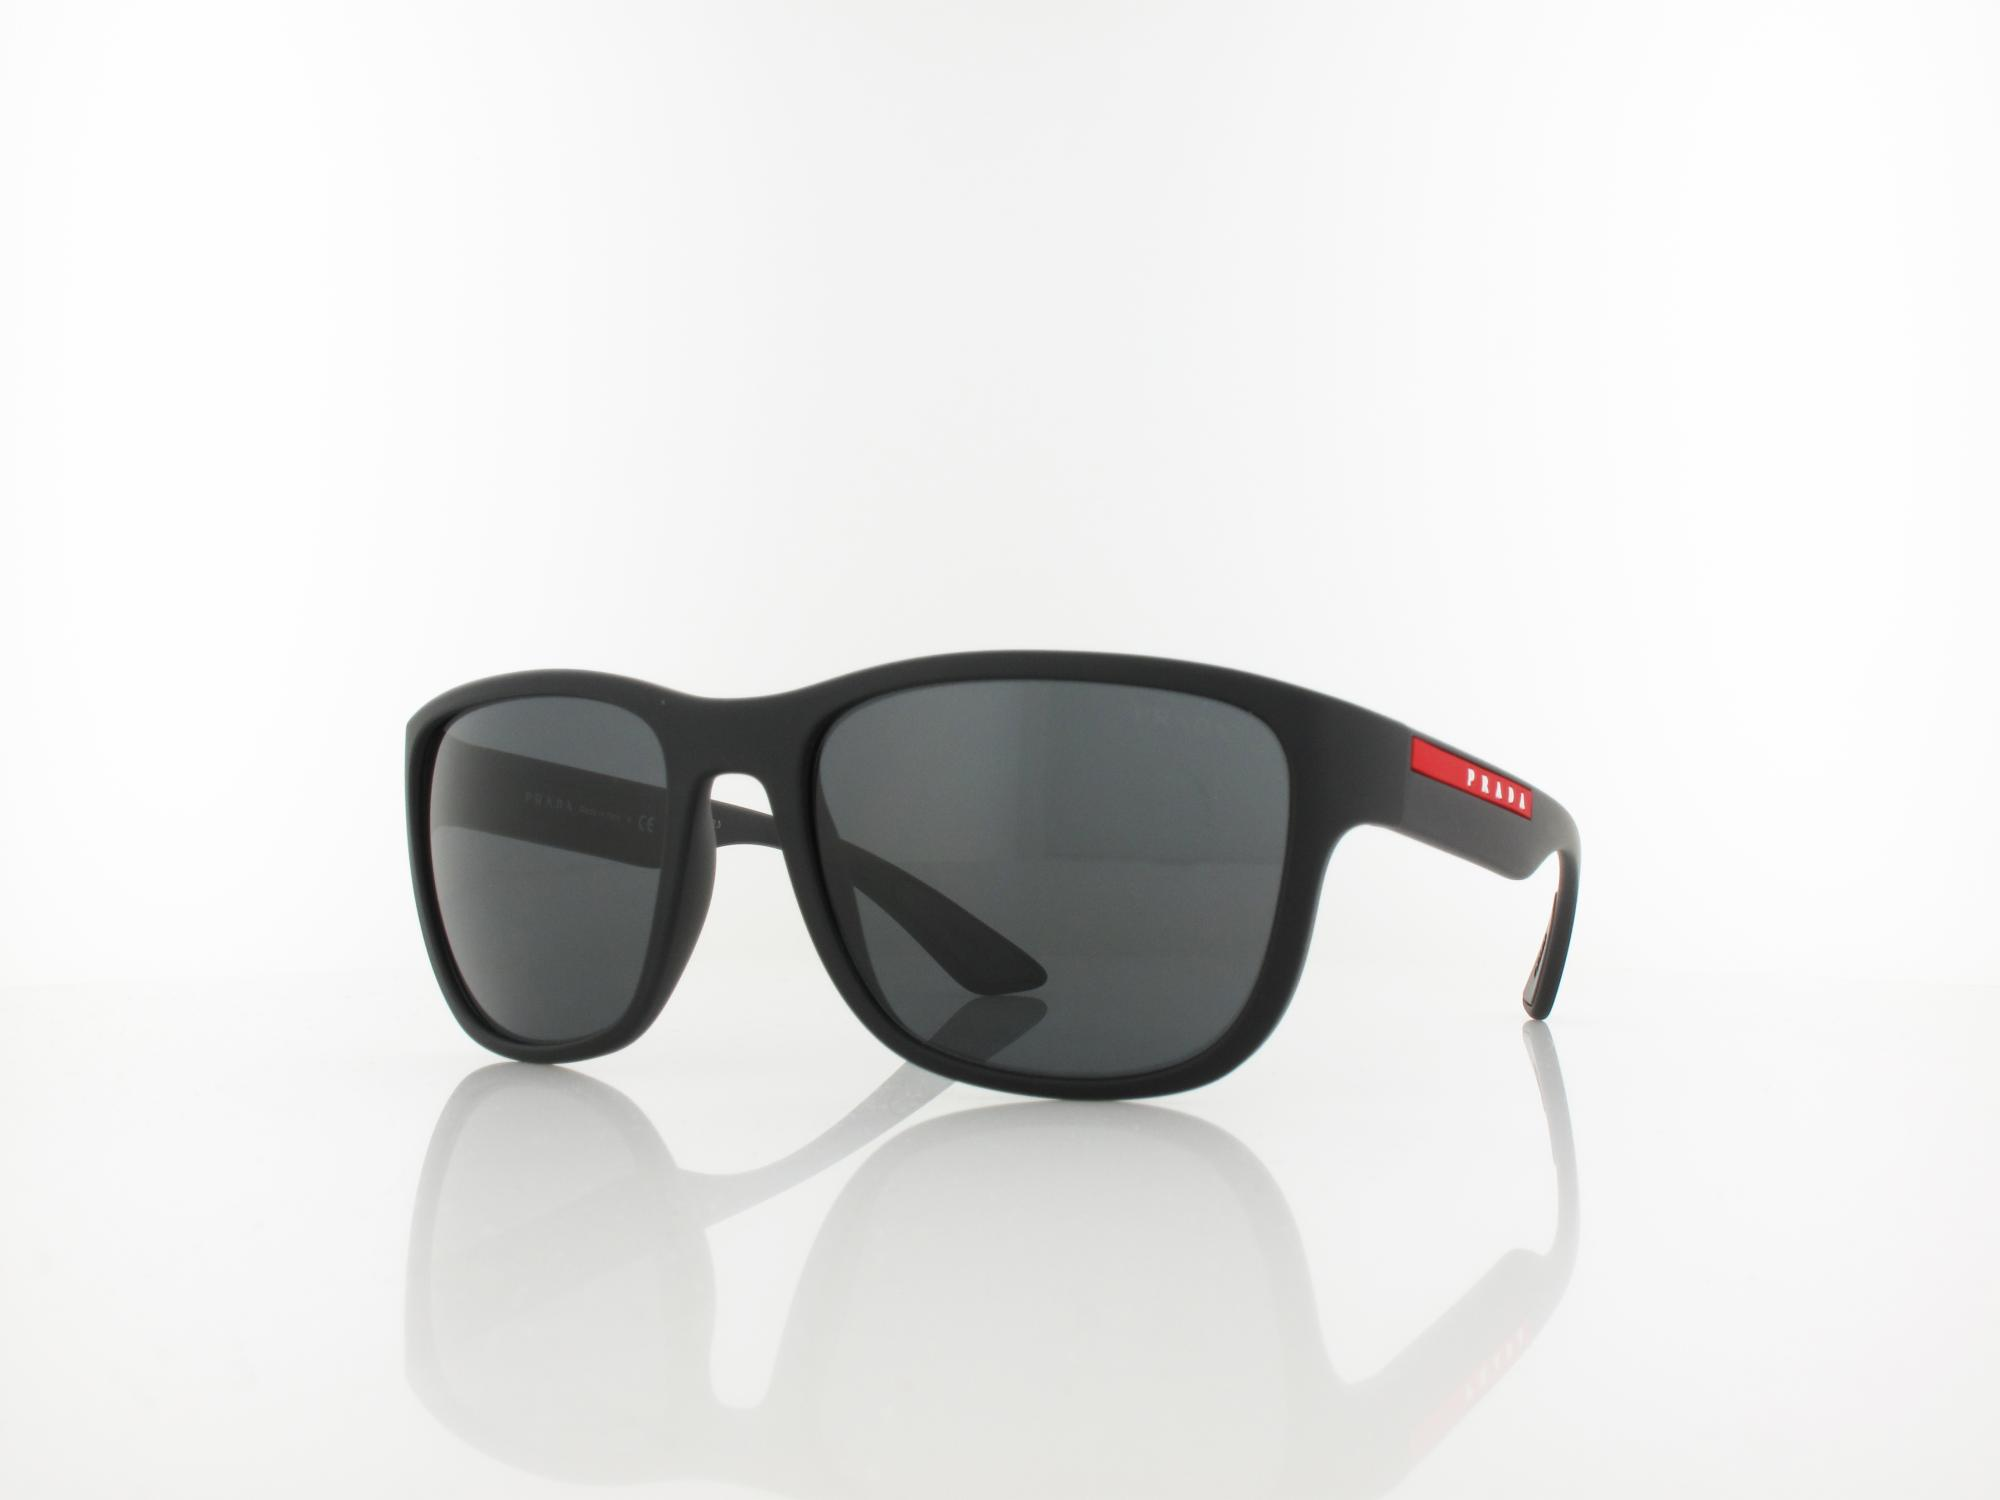 Prada | PS01US DG05S0 59 | black rubber / grey